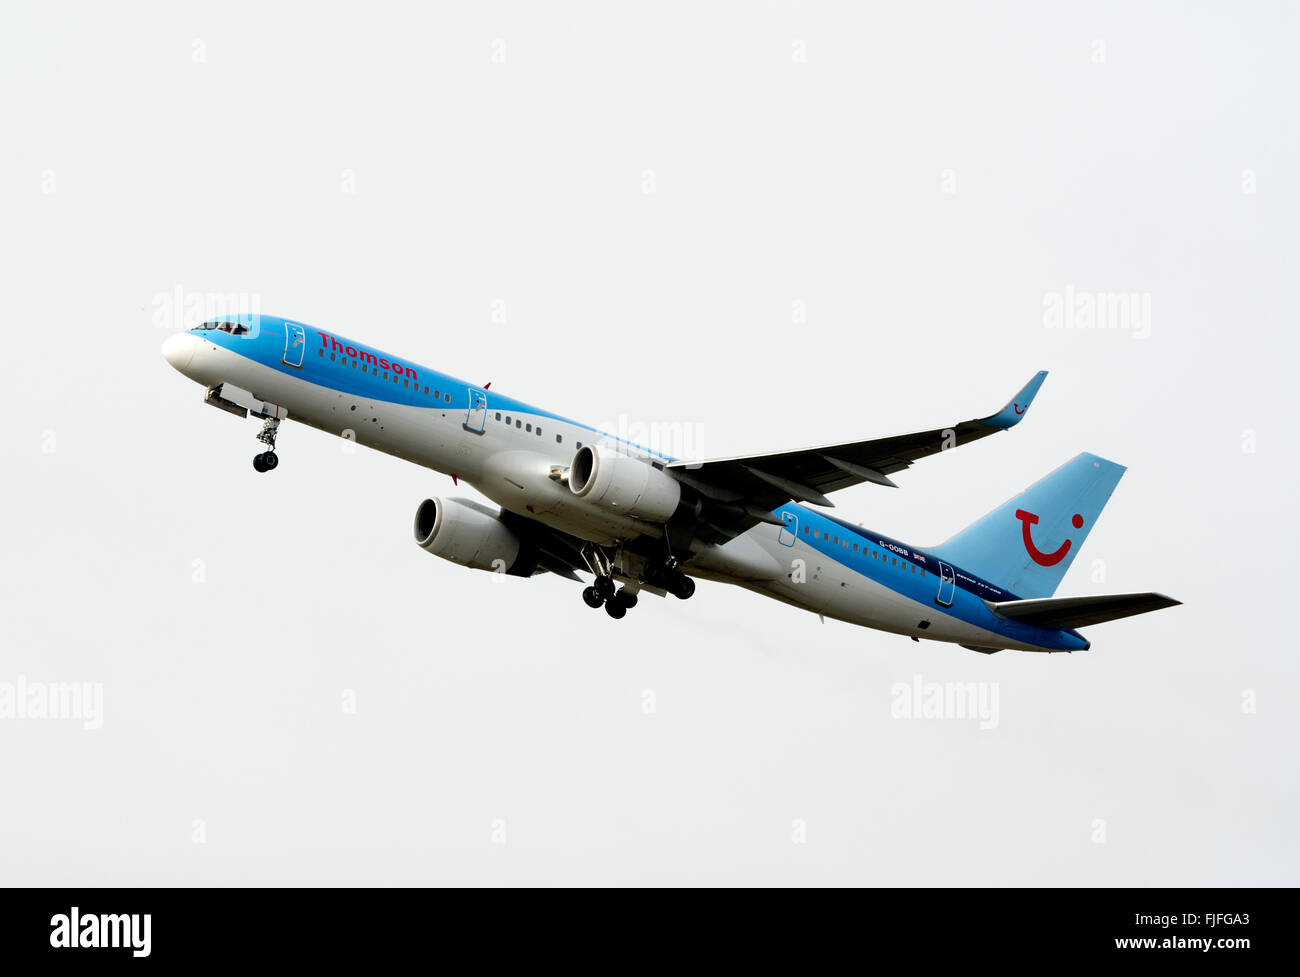 Thomson Boeing 757 taking off at Birmingham Airport, UK (G-OOBB) Stock Photo